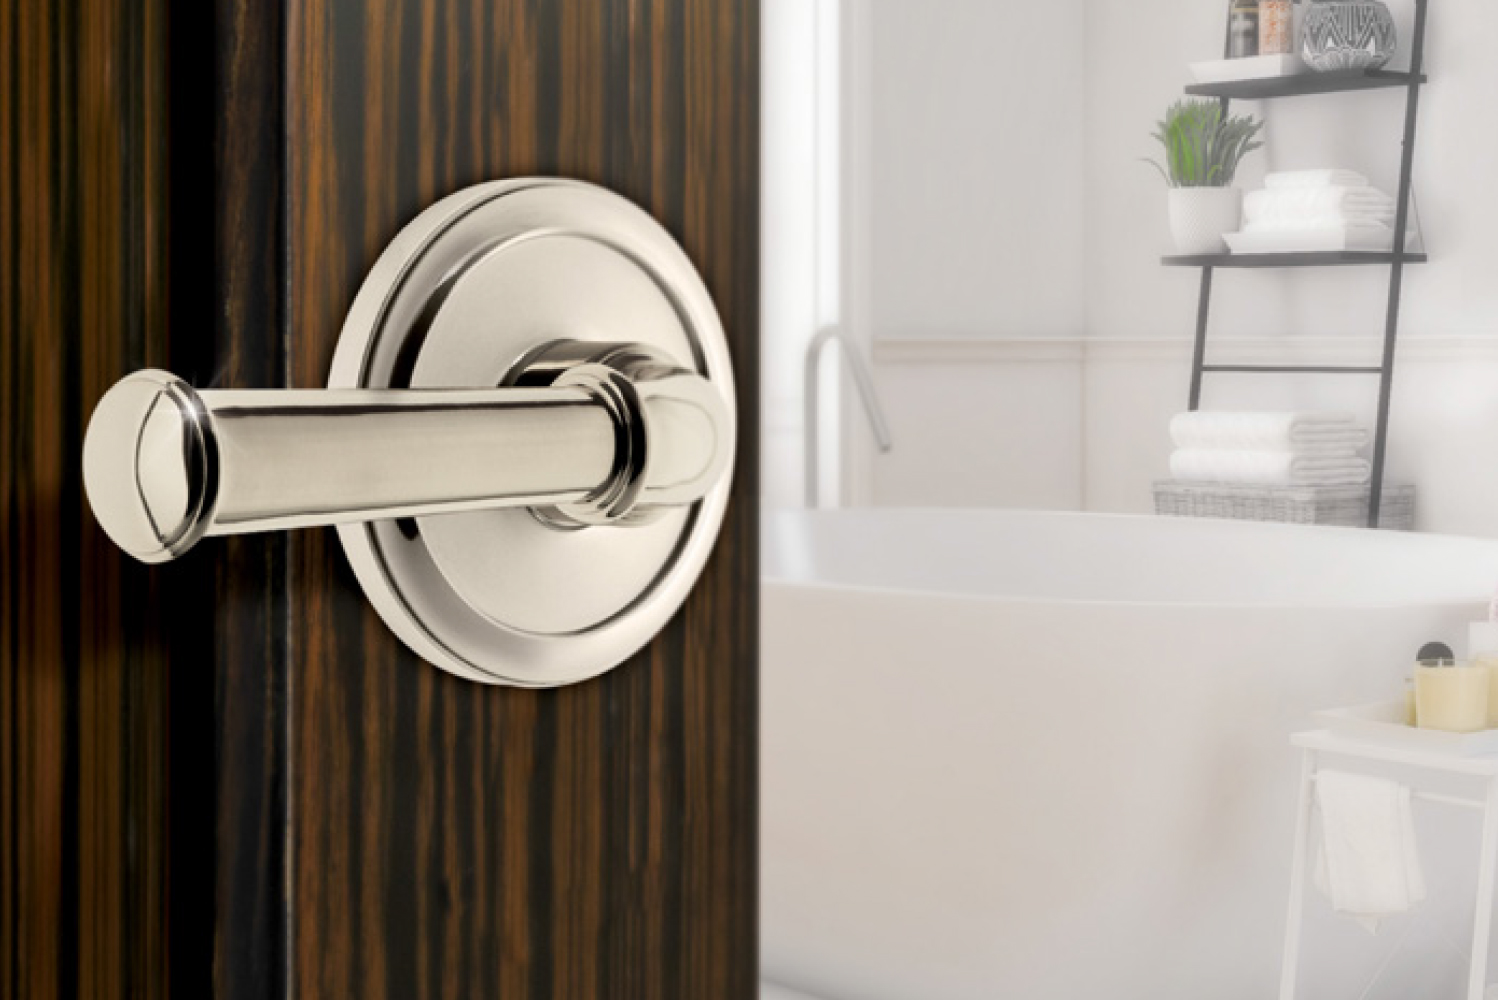 Introducing the Georgetown lever from Grandeur Hardware.